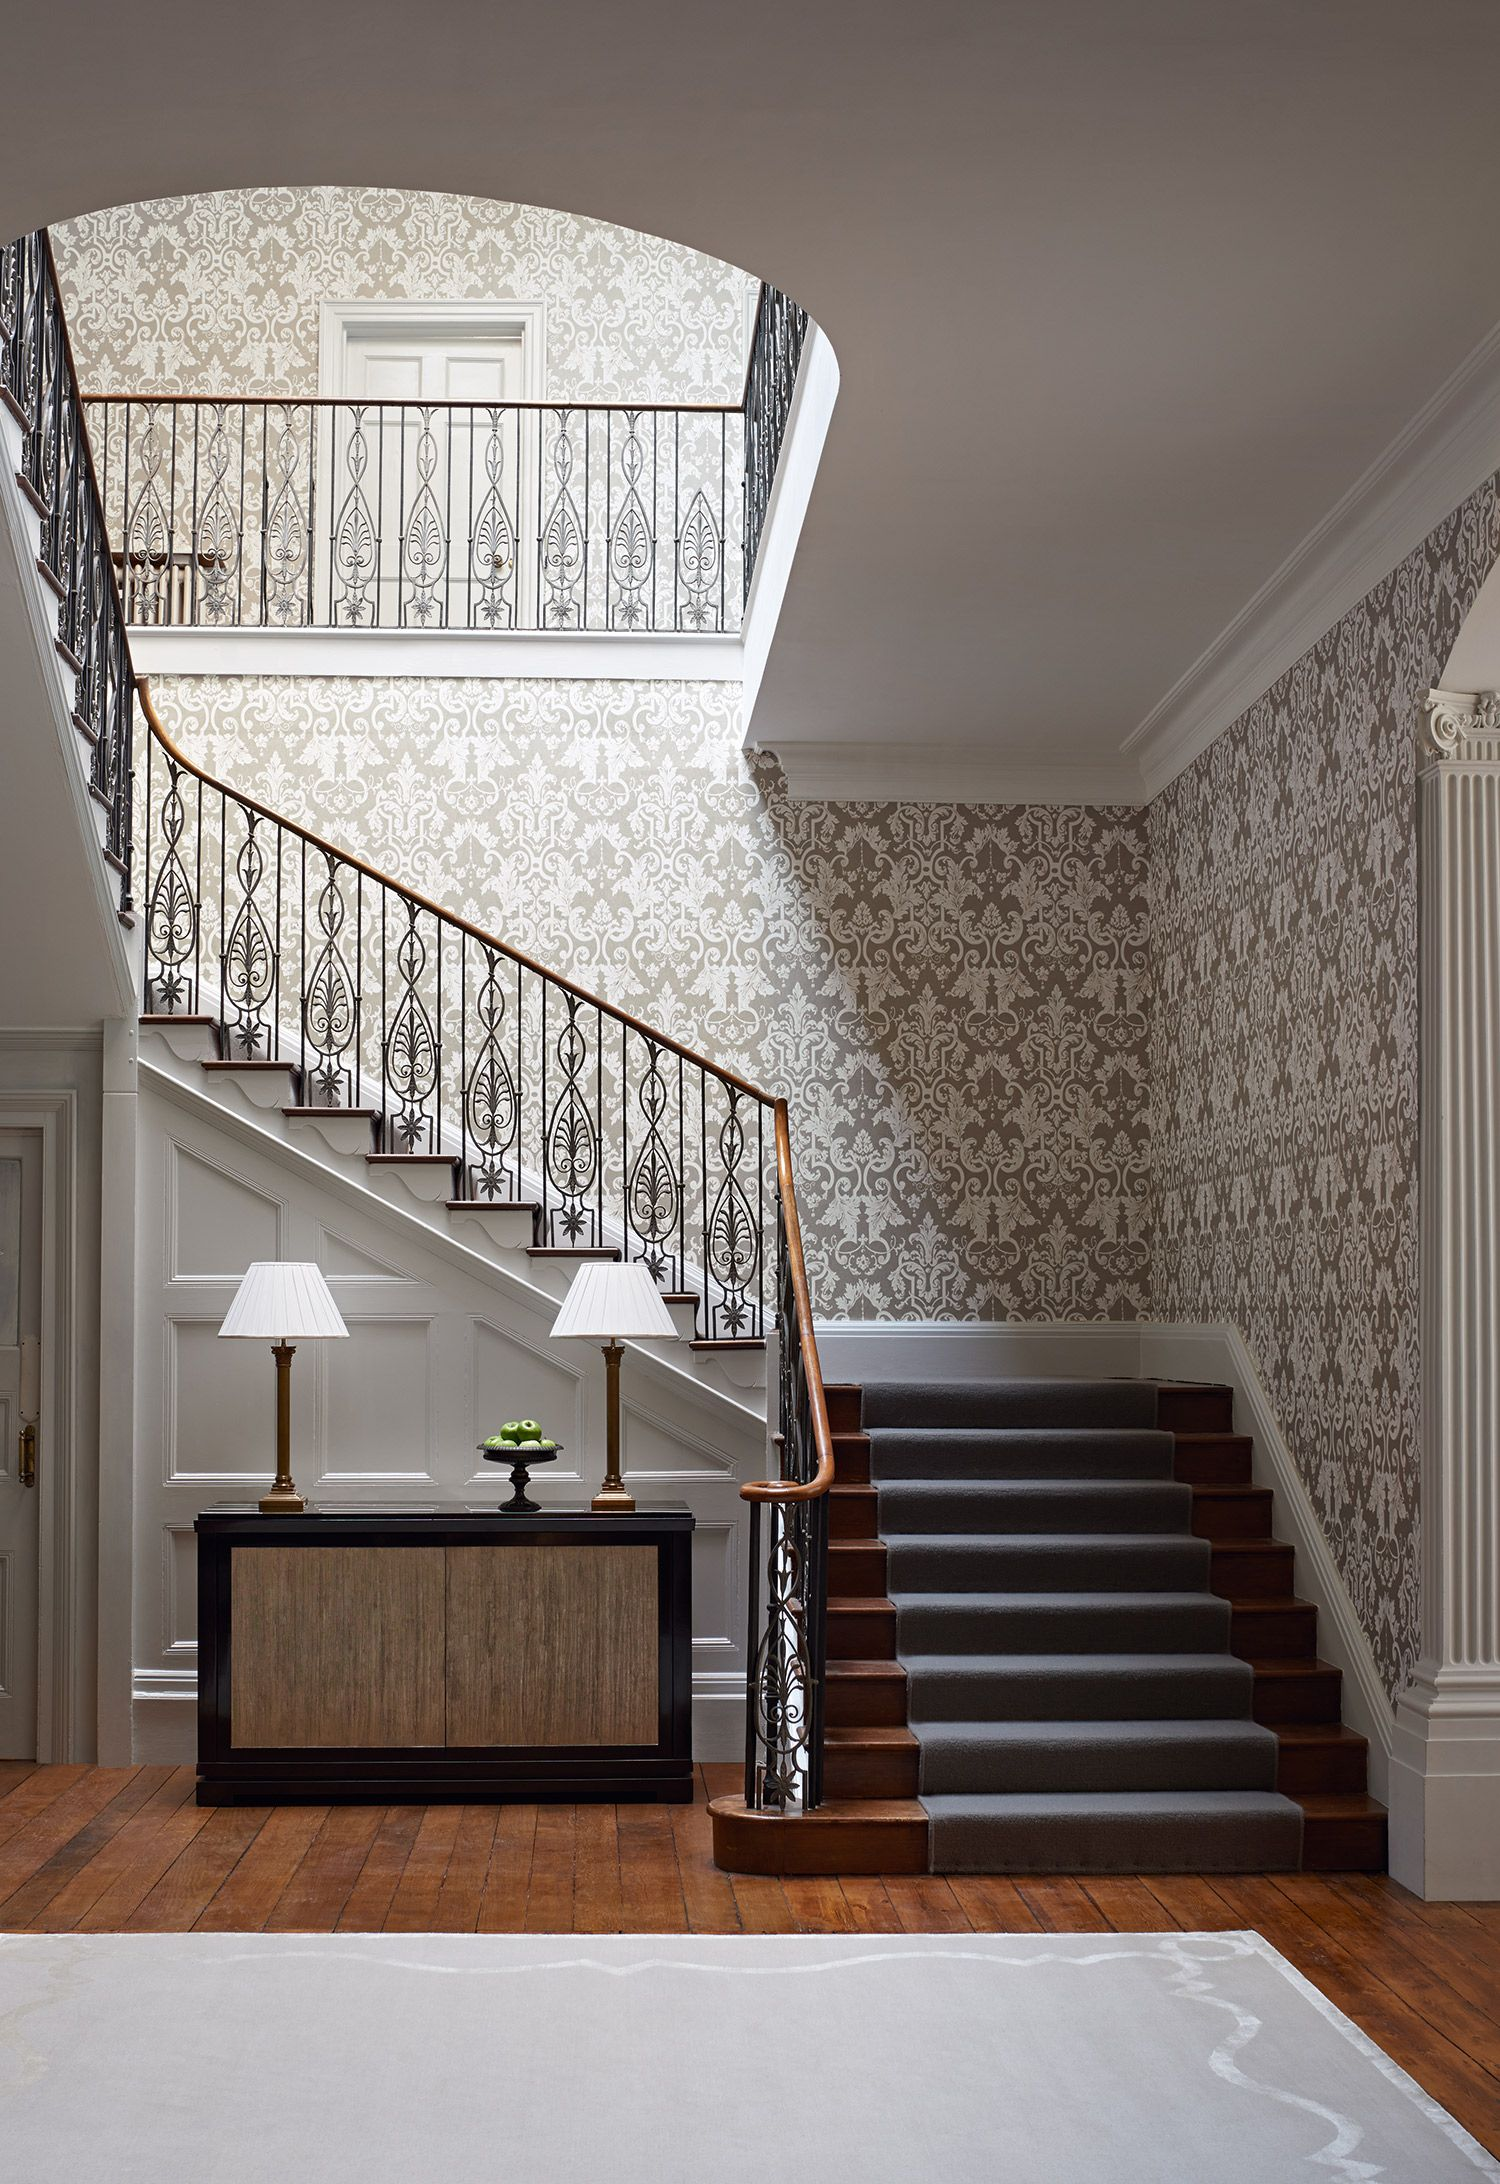 Hall Stairs And Landing Wallpaper Inspiration For Your